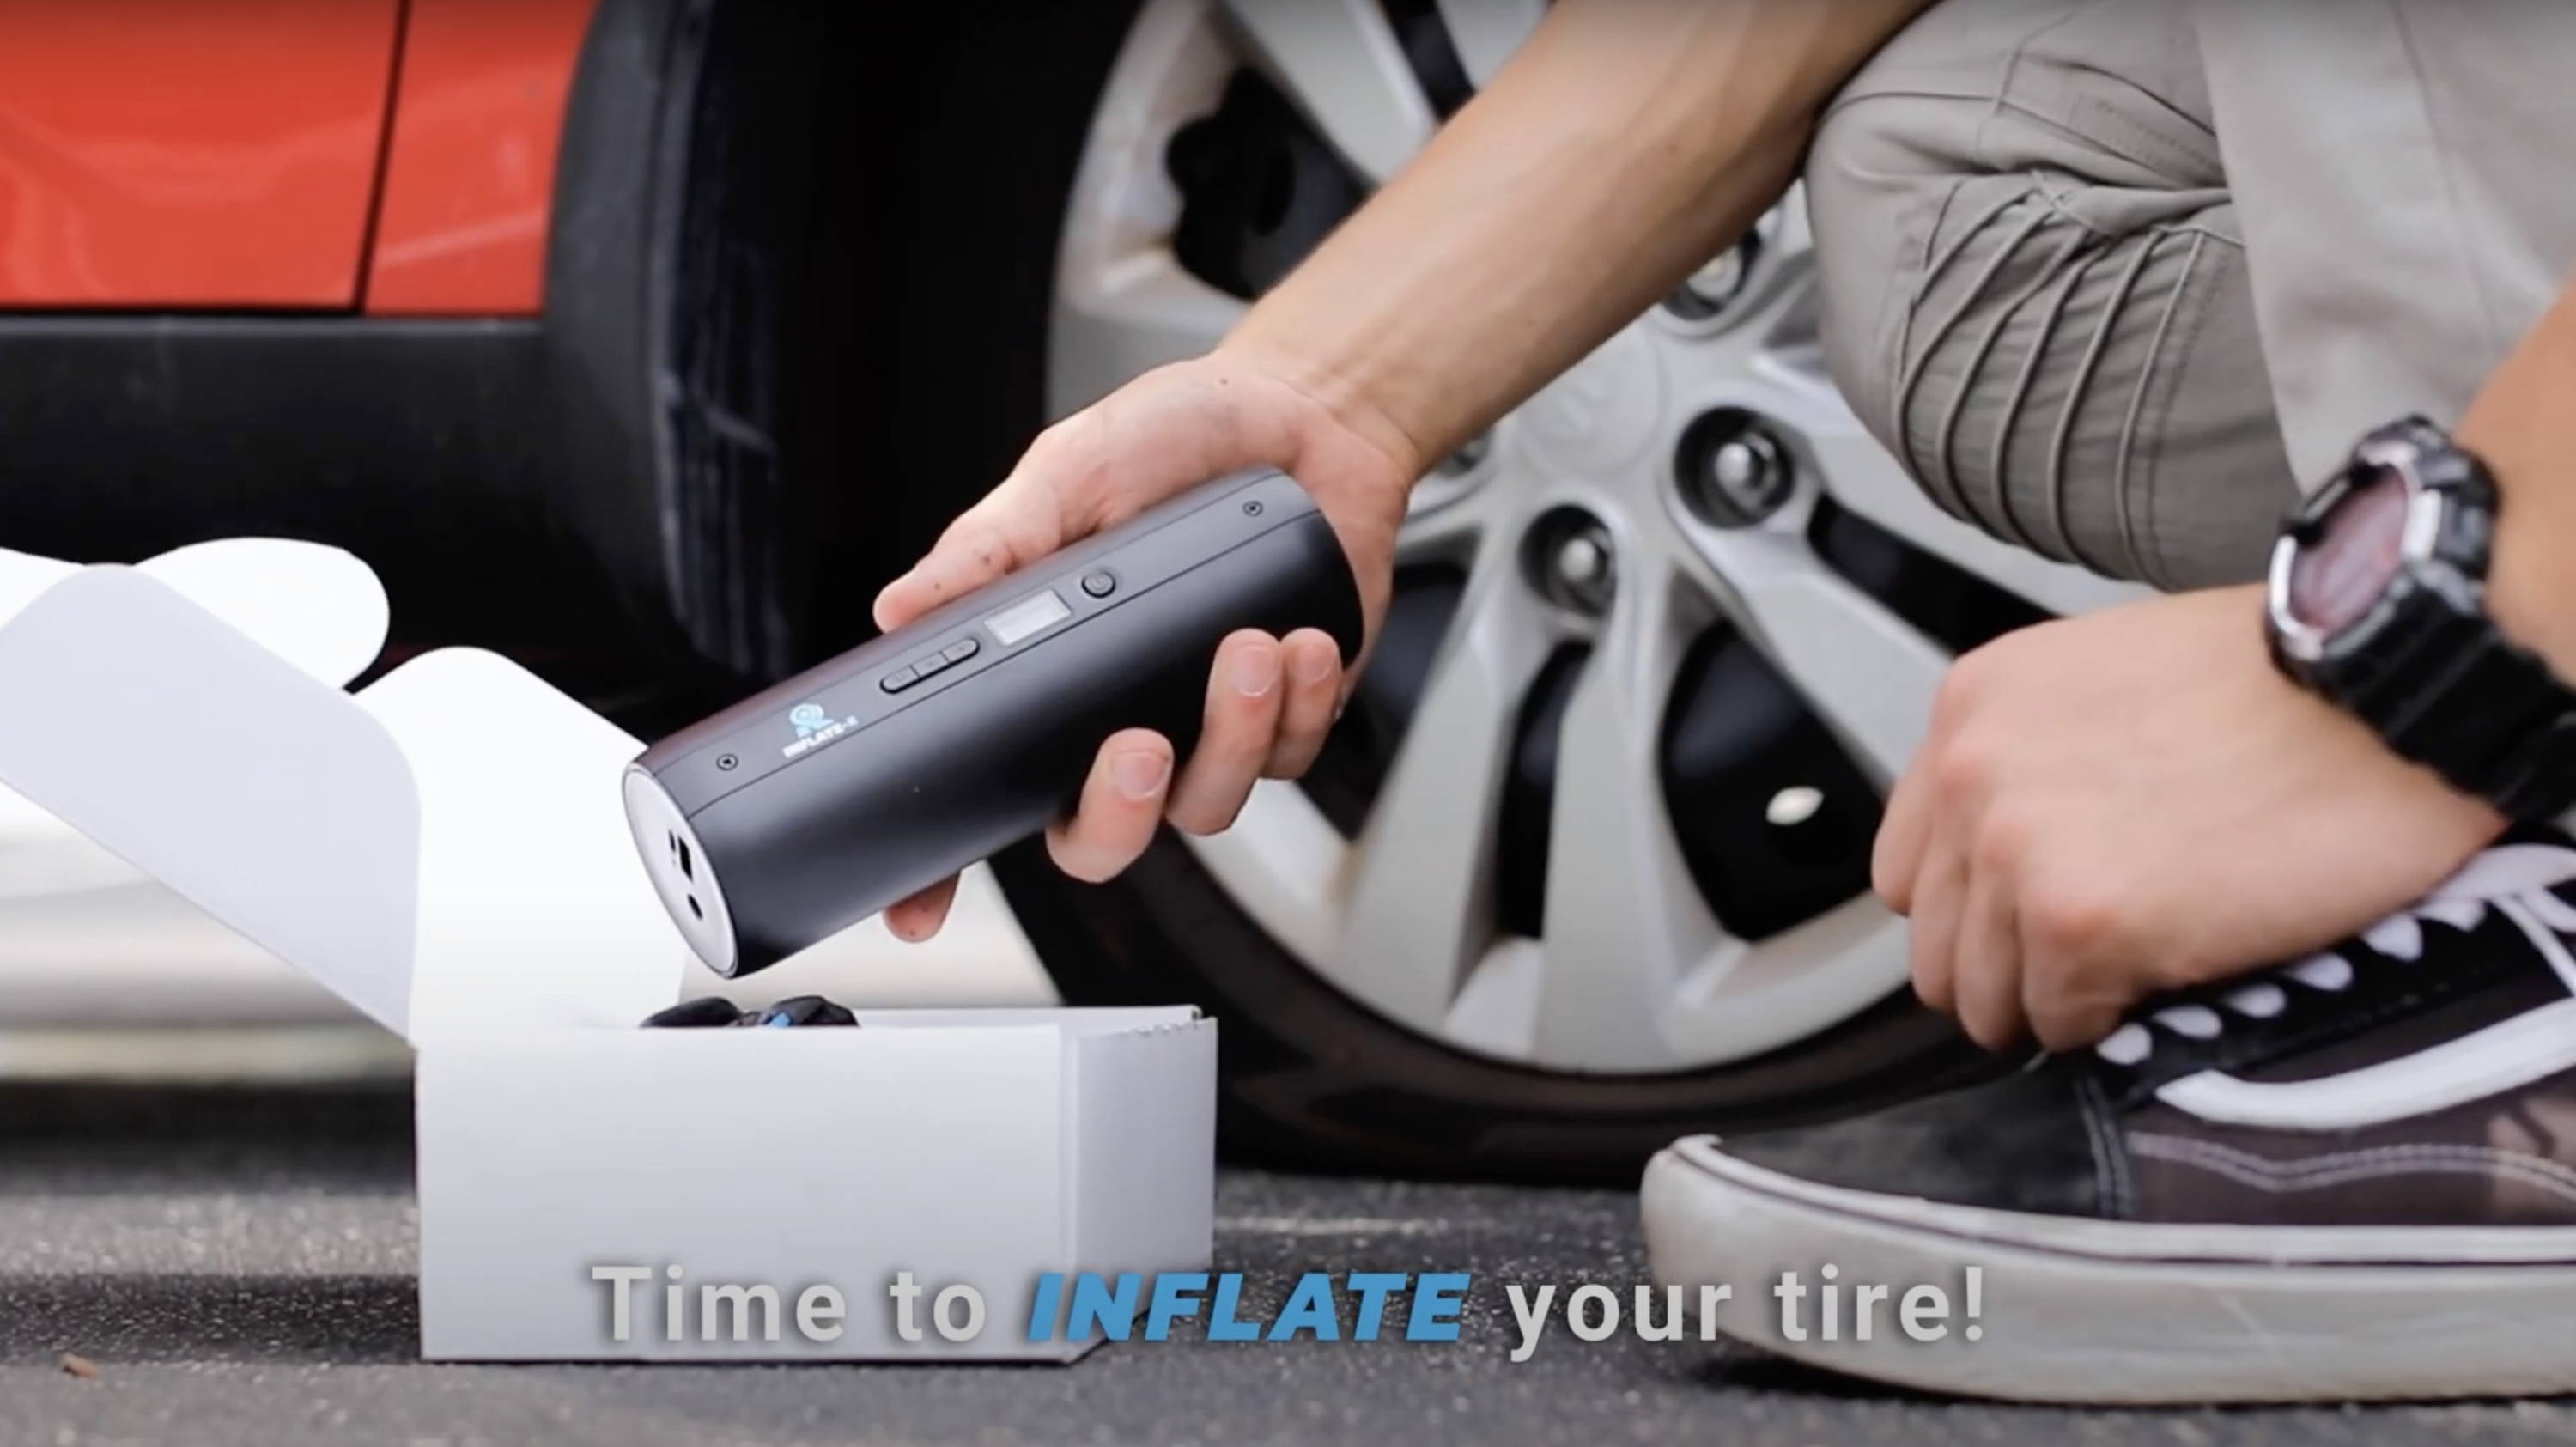 Time to inflate your tire with InflateR.